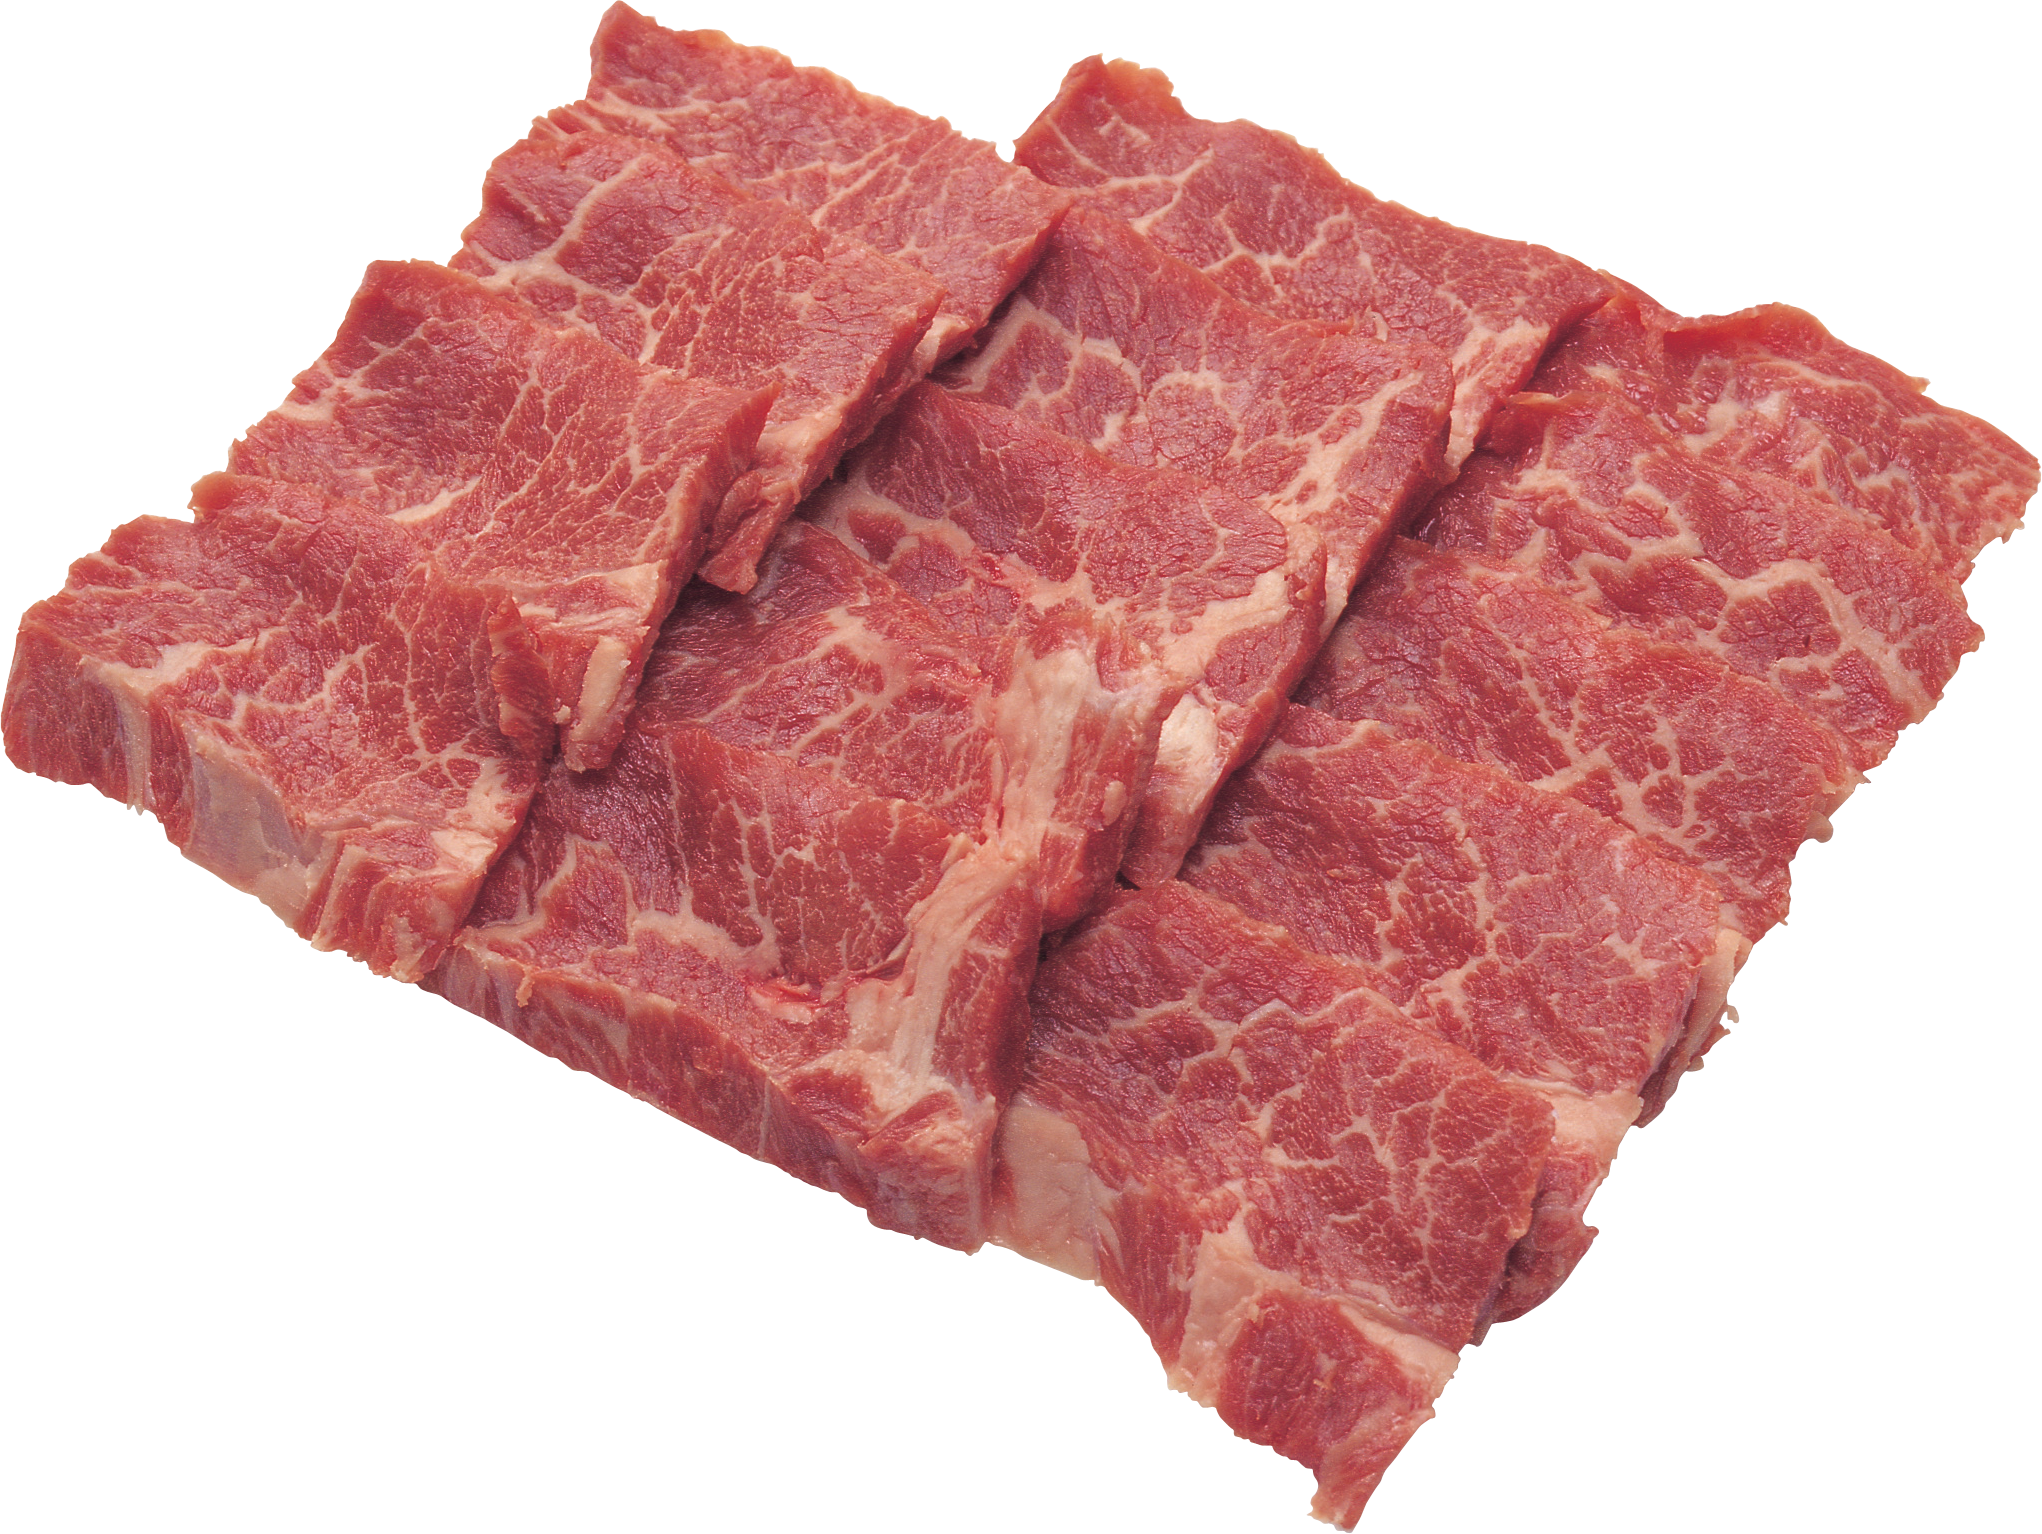 Meat clipart roasted meat. Png image free download